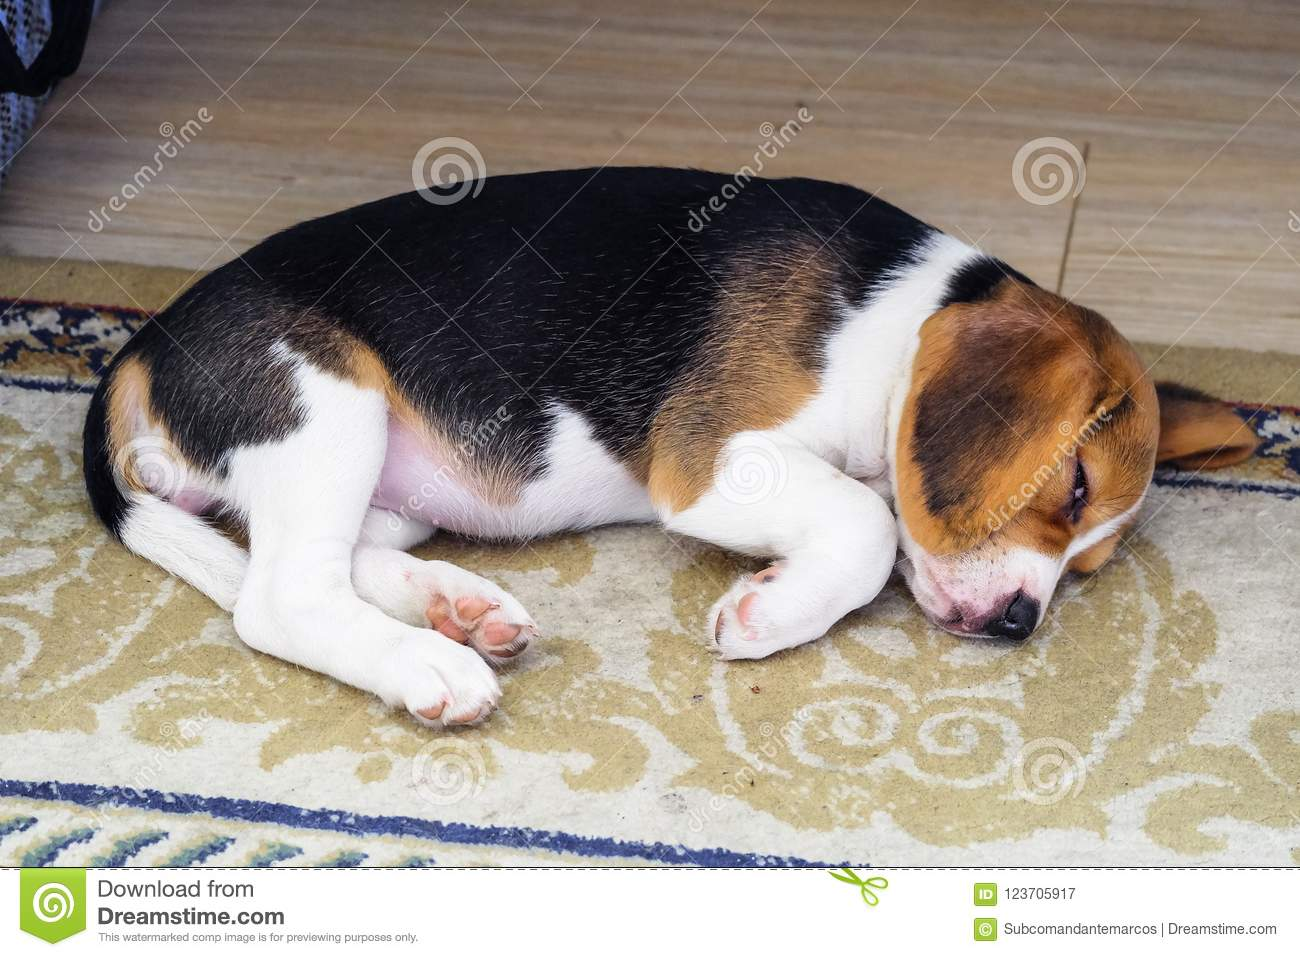 A Beagle Puppy Little Nice Doggy Relaxing On A Carpet Stock Image Image Of Home Friend 123705917